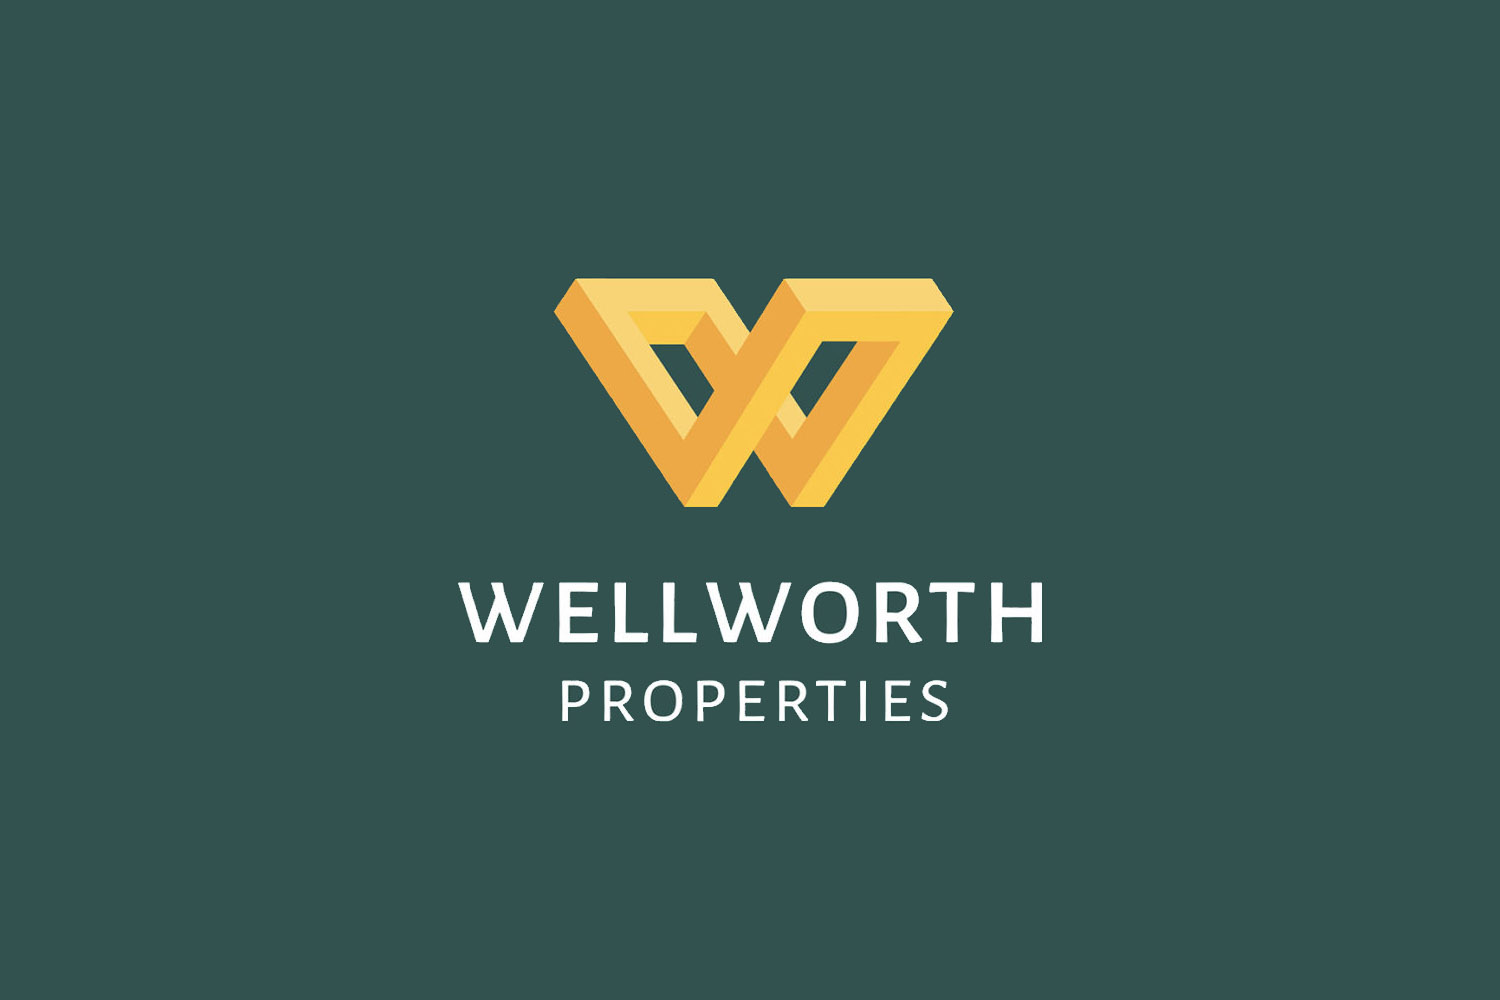 Wellworth Properties